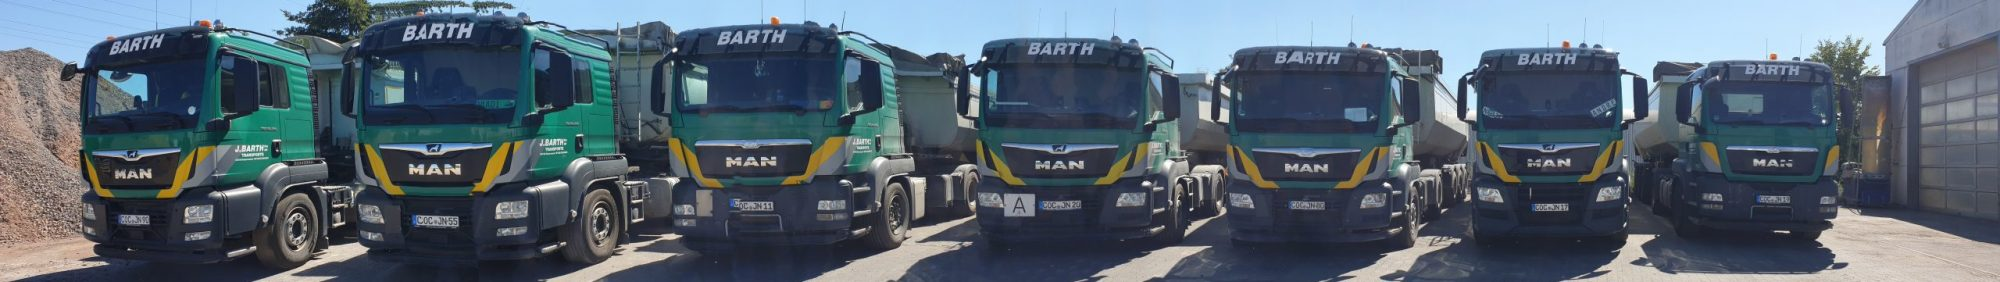 barth-transporte